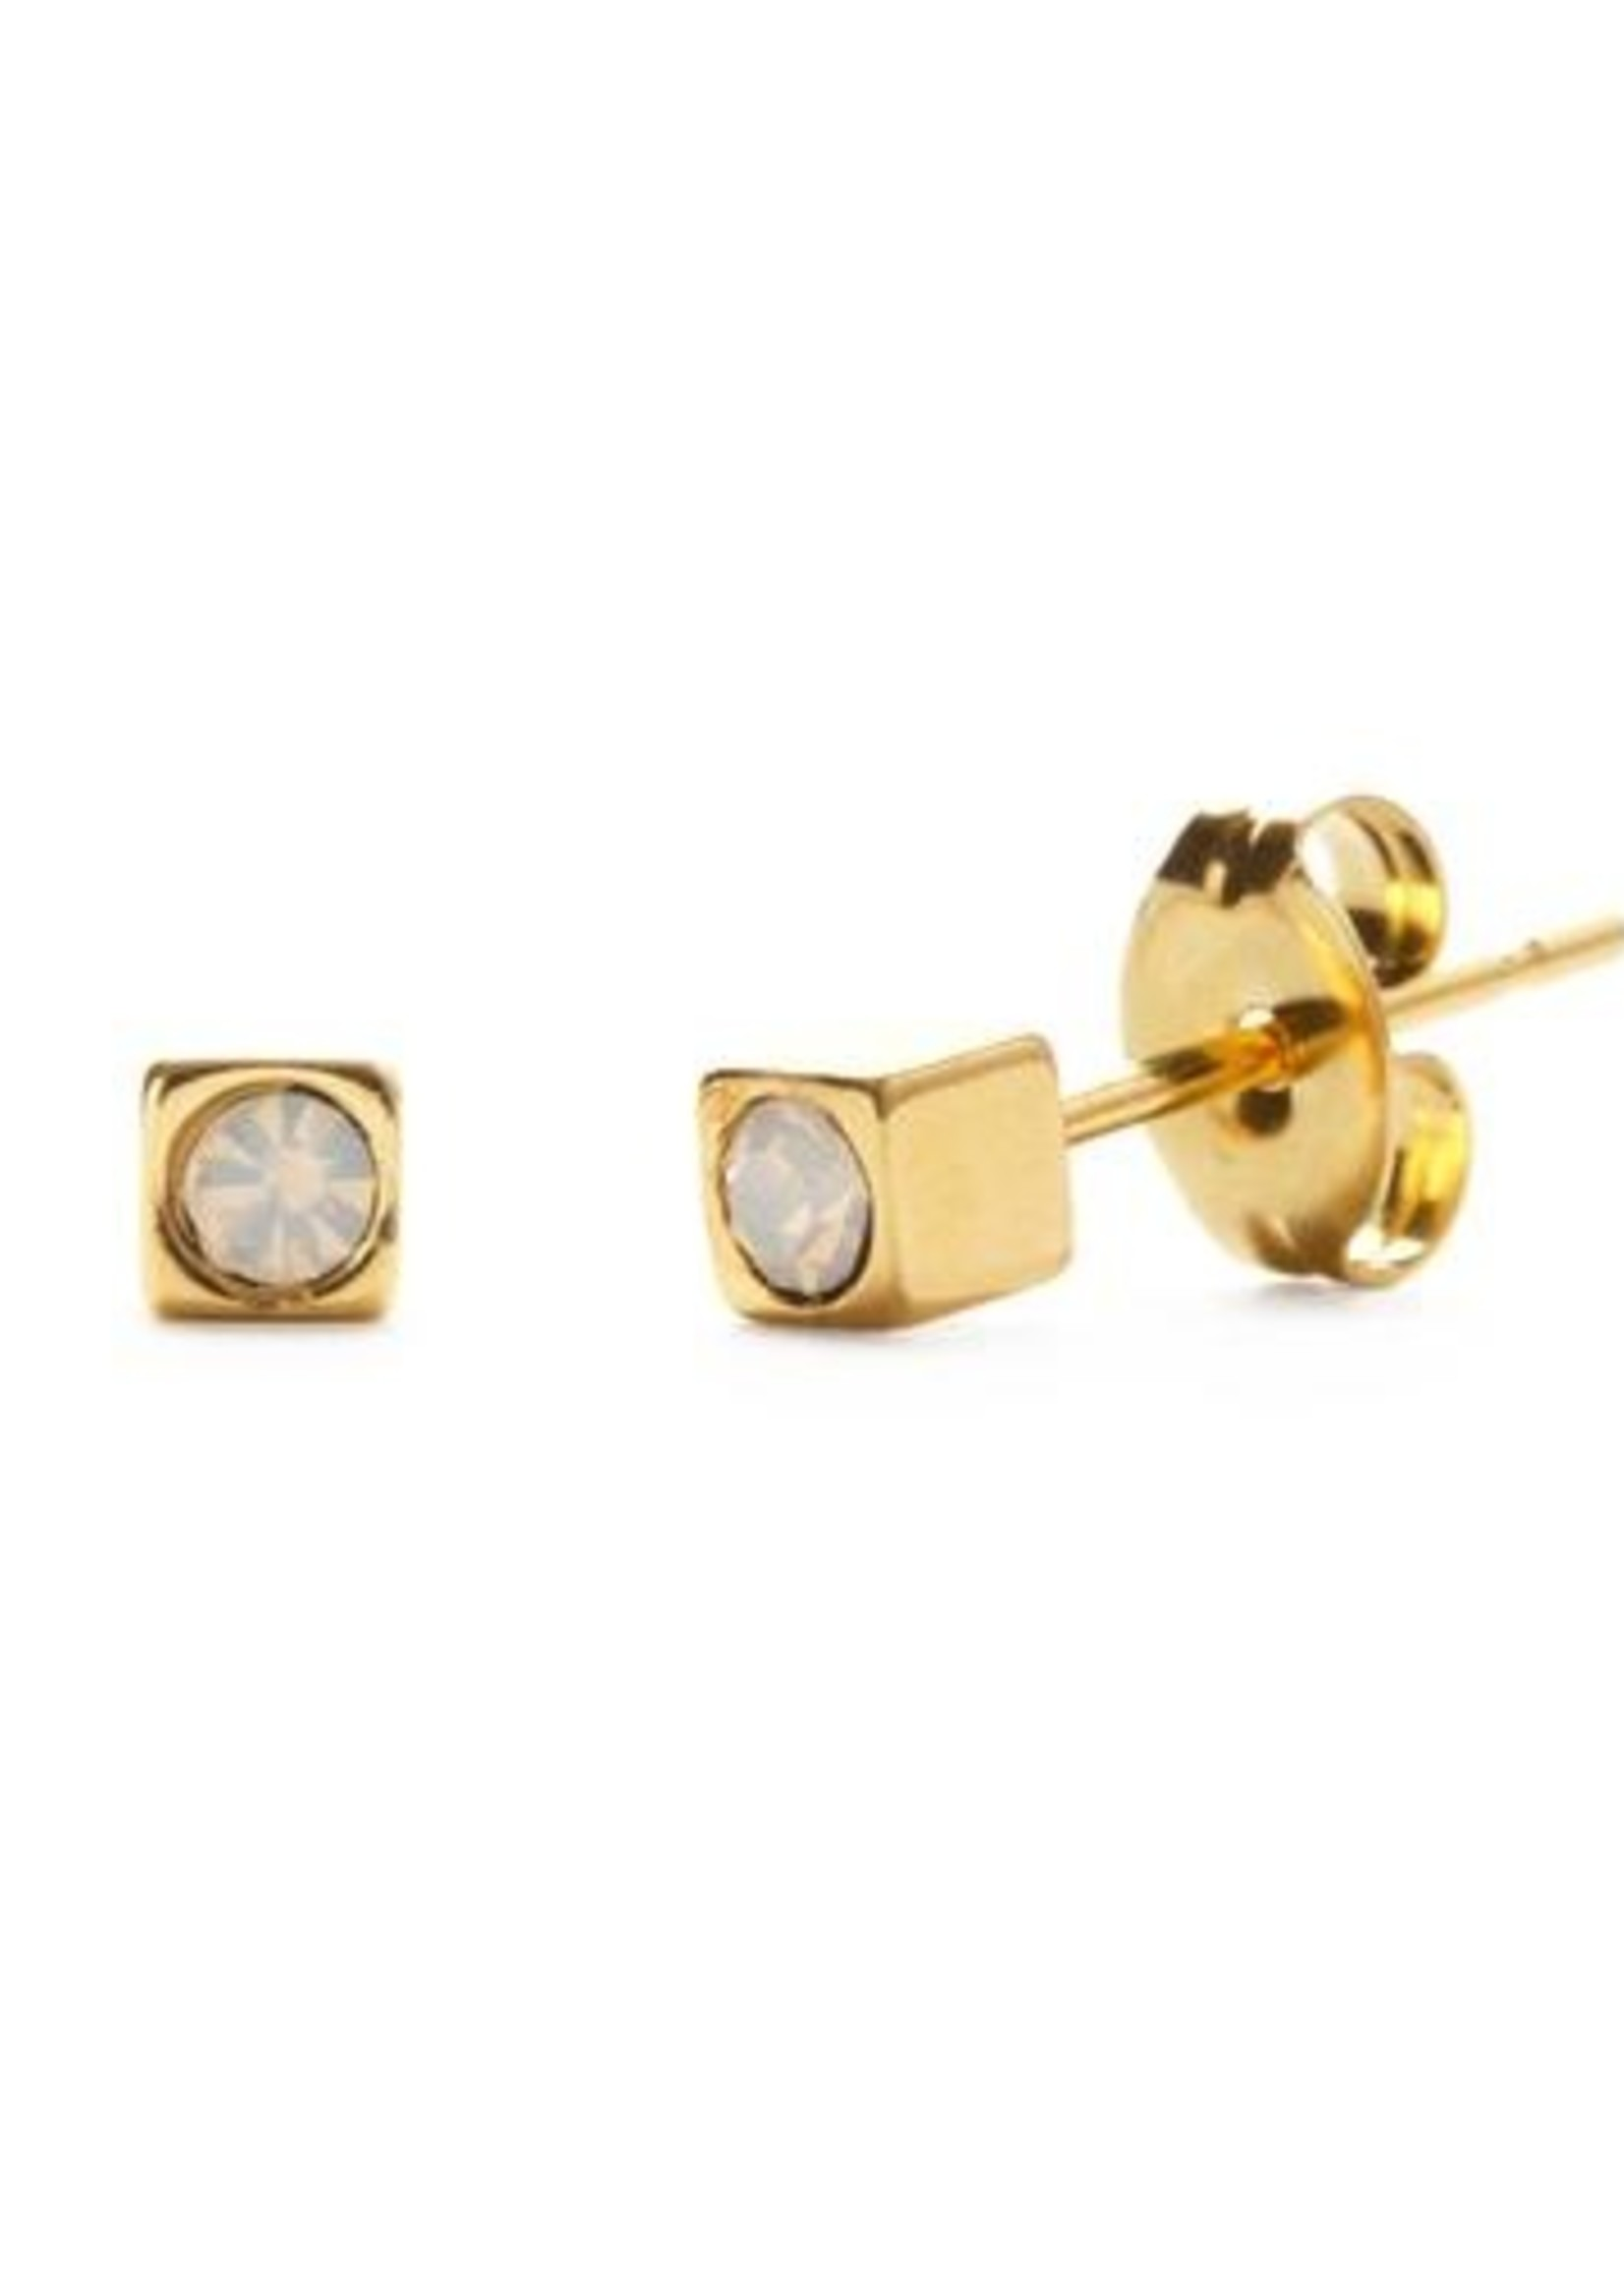 AMANO studio 24k Gold Cube Stud with Taupe Crystal